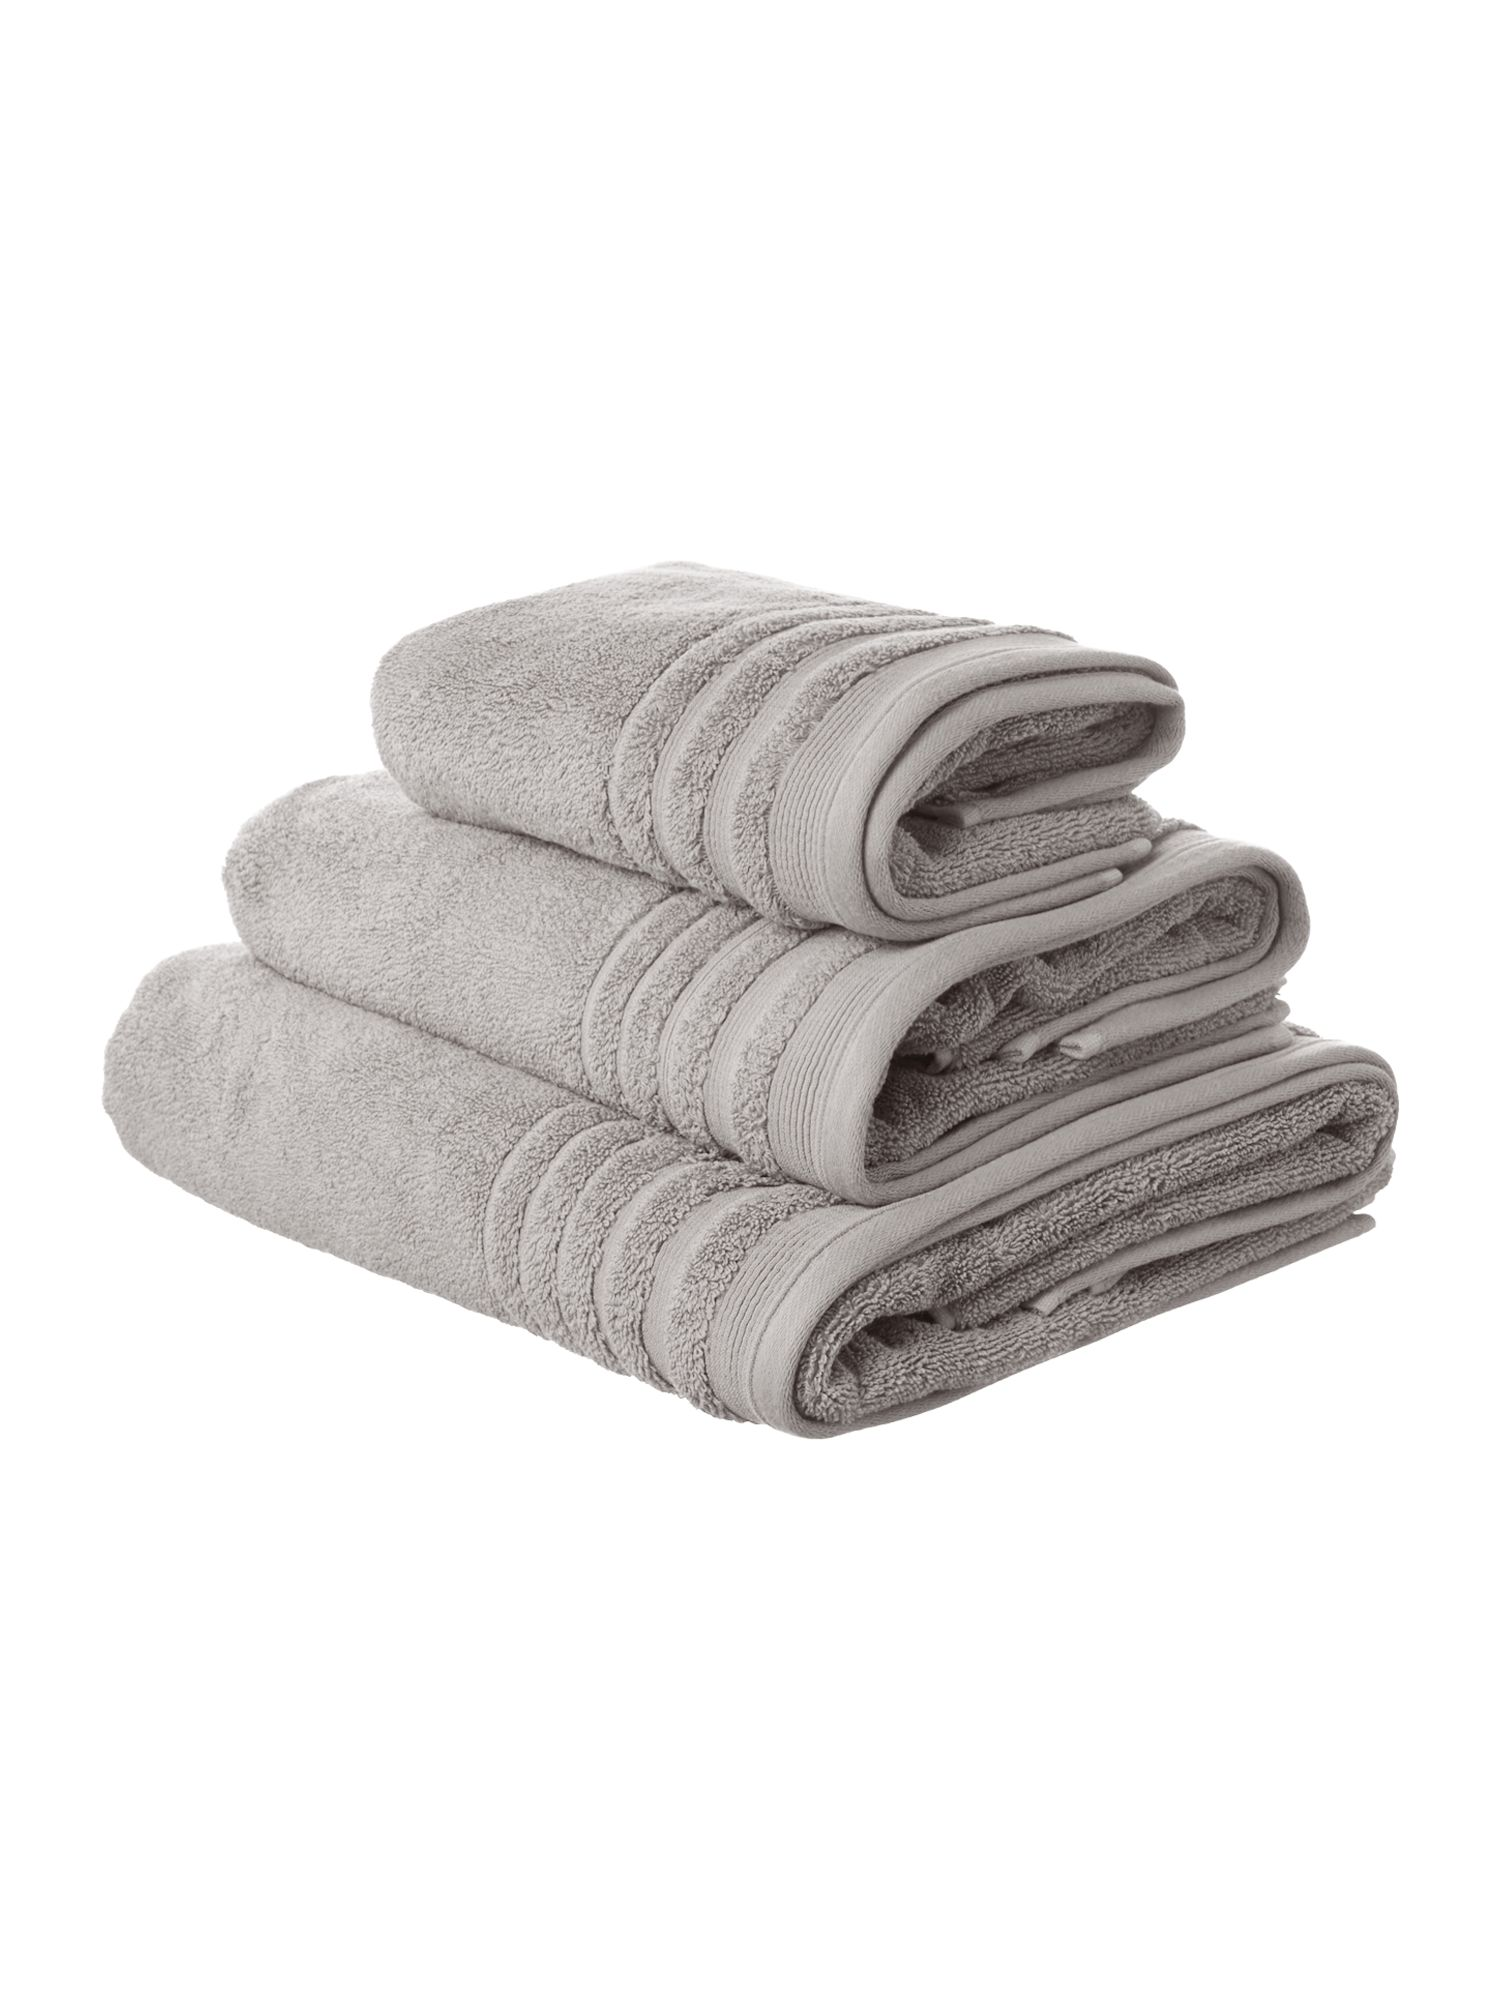 Classic luxury towel range in lunar